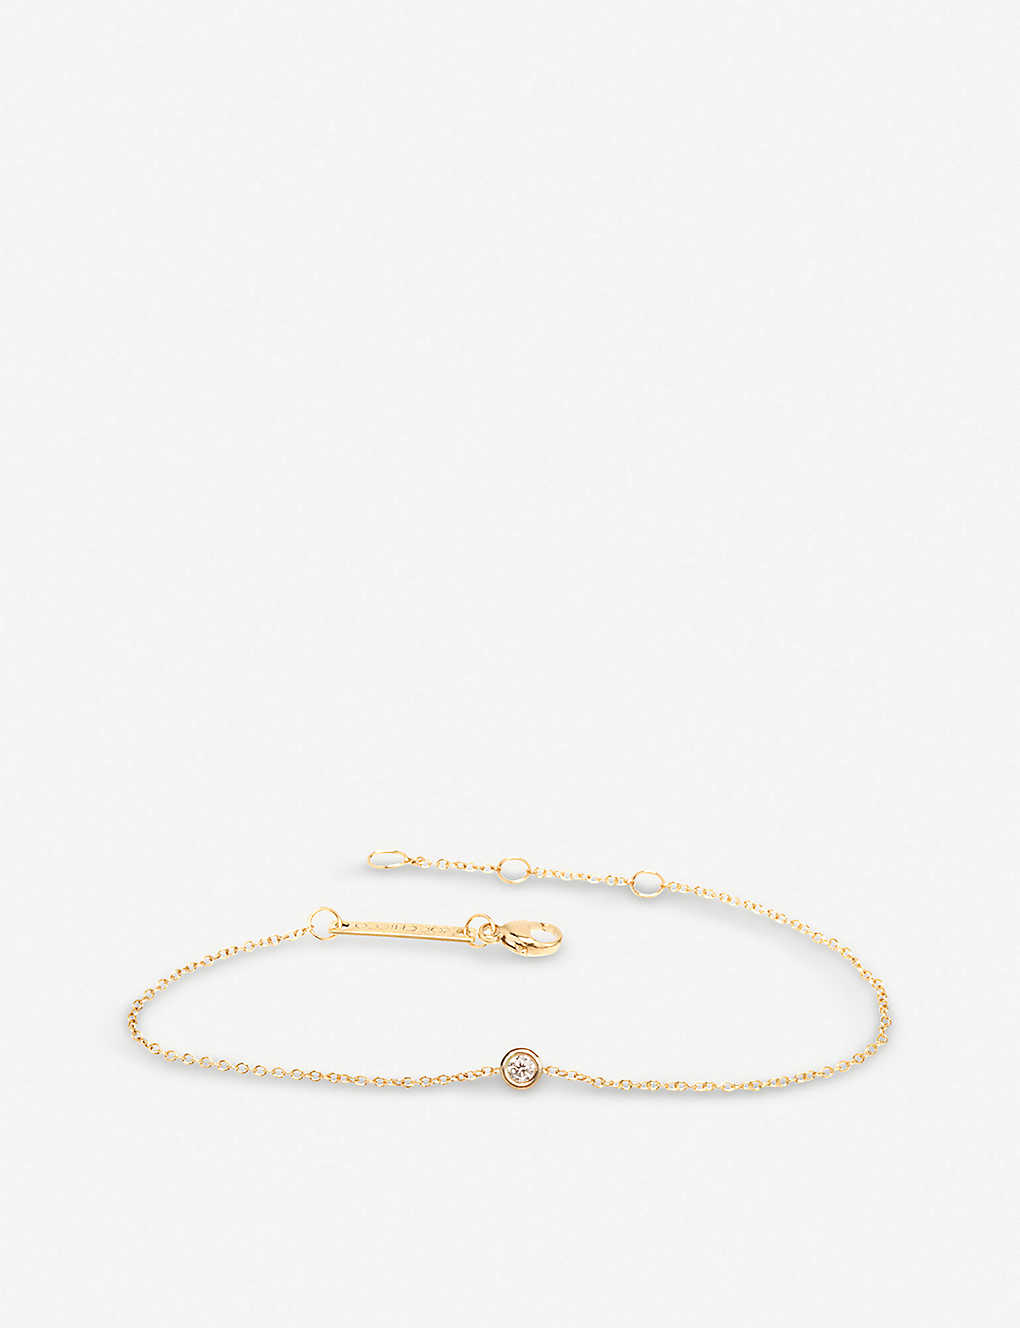 THE ALKEMISTRY: Zoë Chicco 14ct yellow-gold and diamond chain bracelet